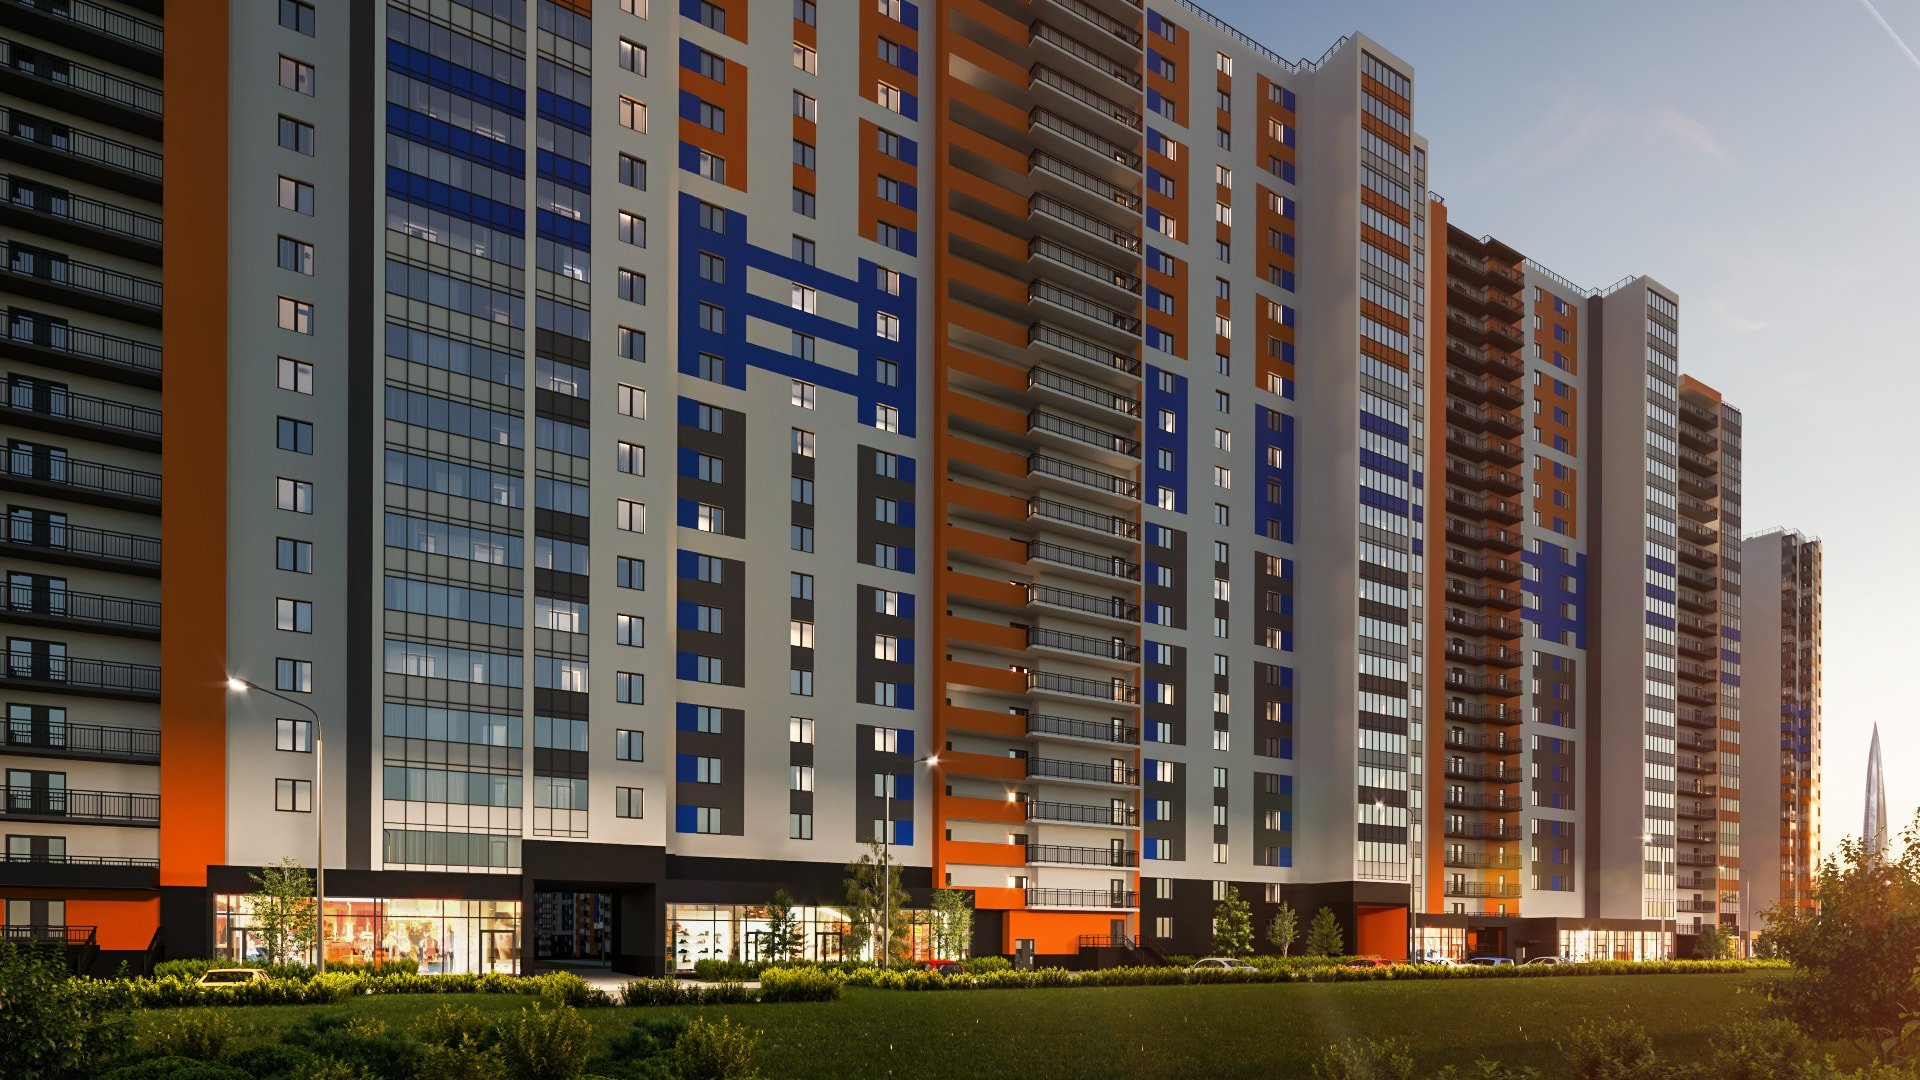 Start of sales! New phase of RC Polis on Komendantsky: apartments from 1,64 mln rubles